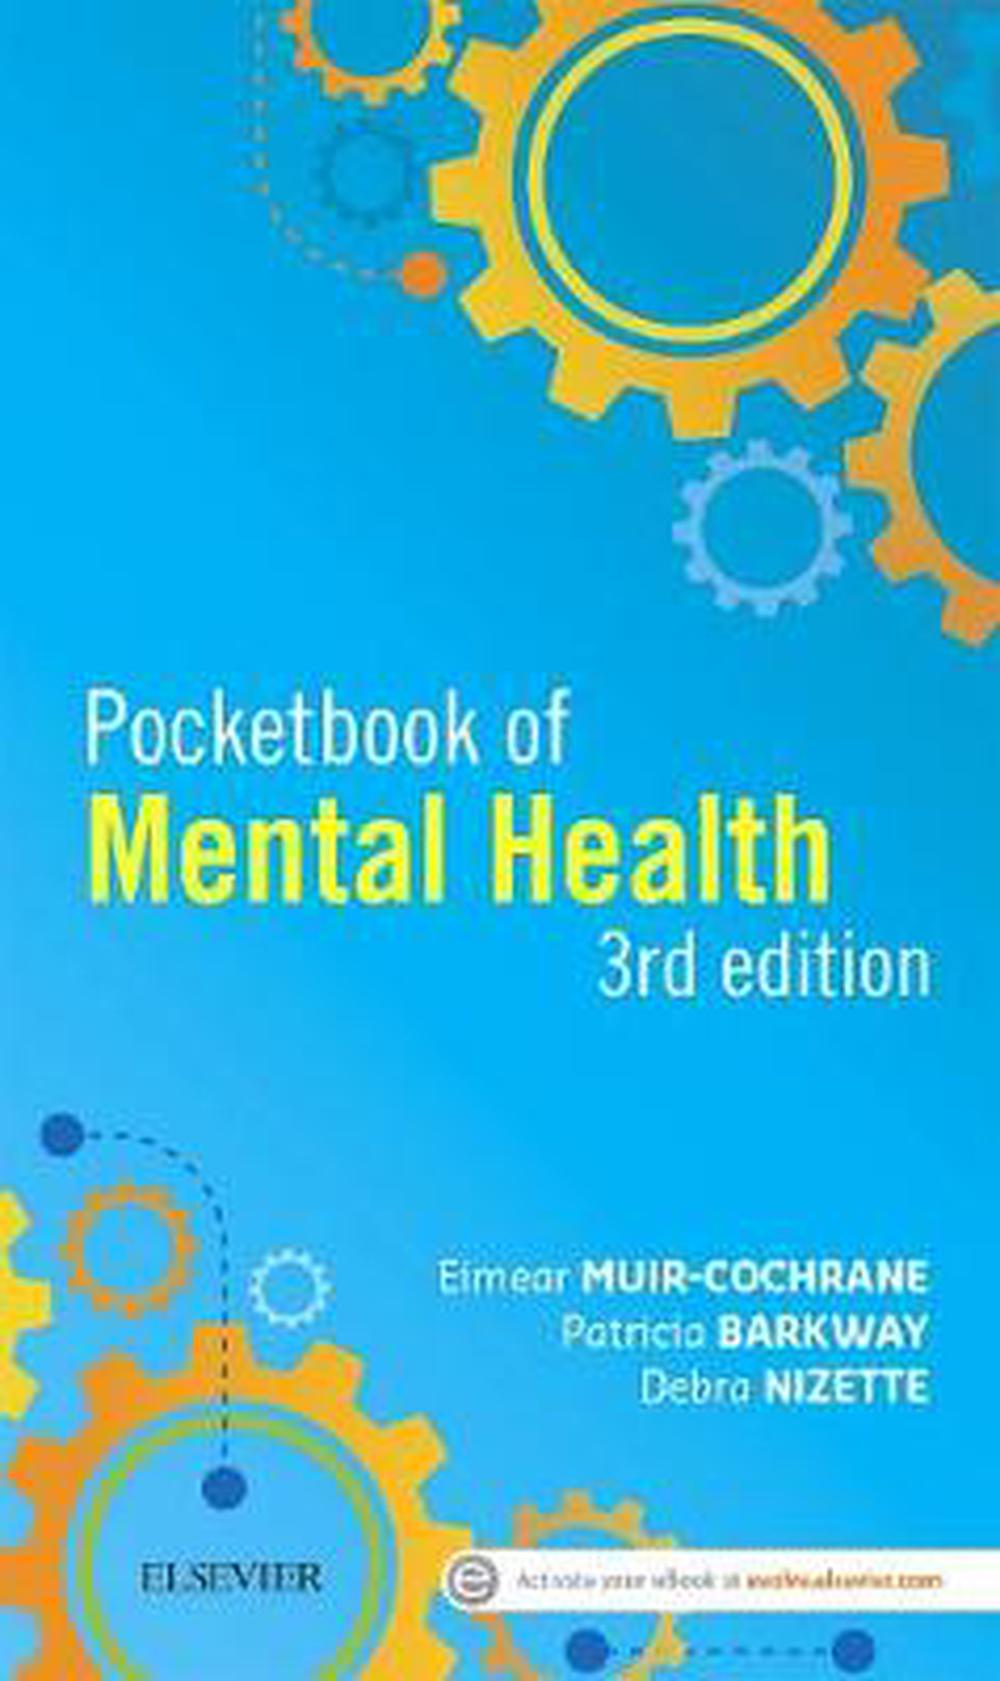 Pocketbook of Mental Health, 3rd Edition